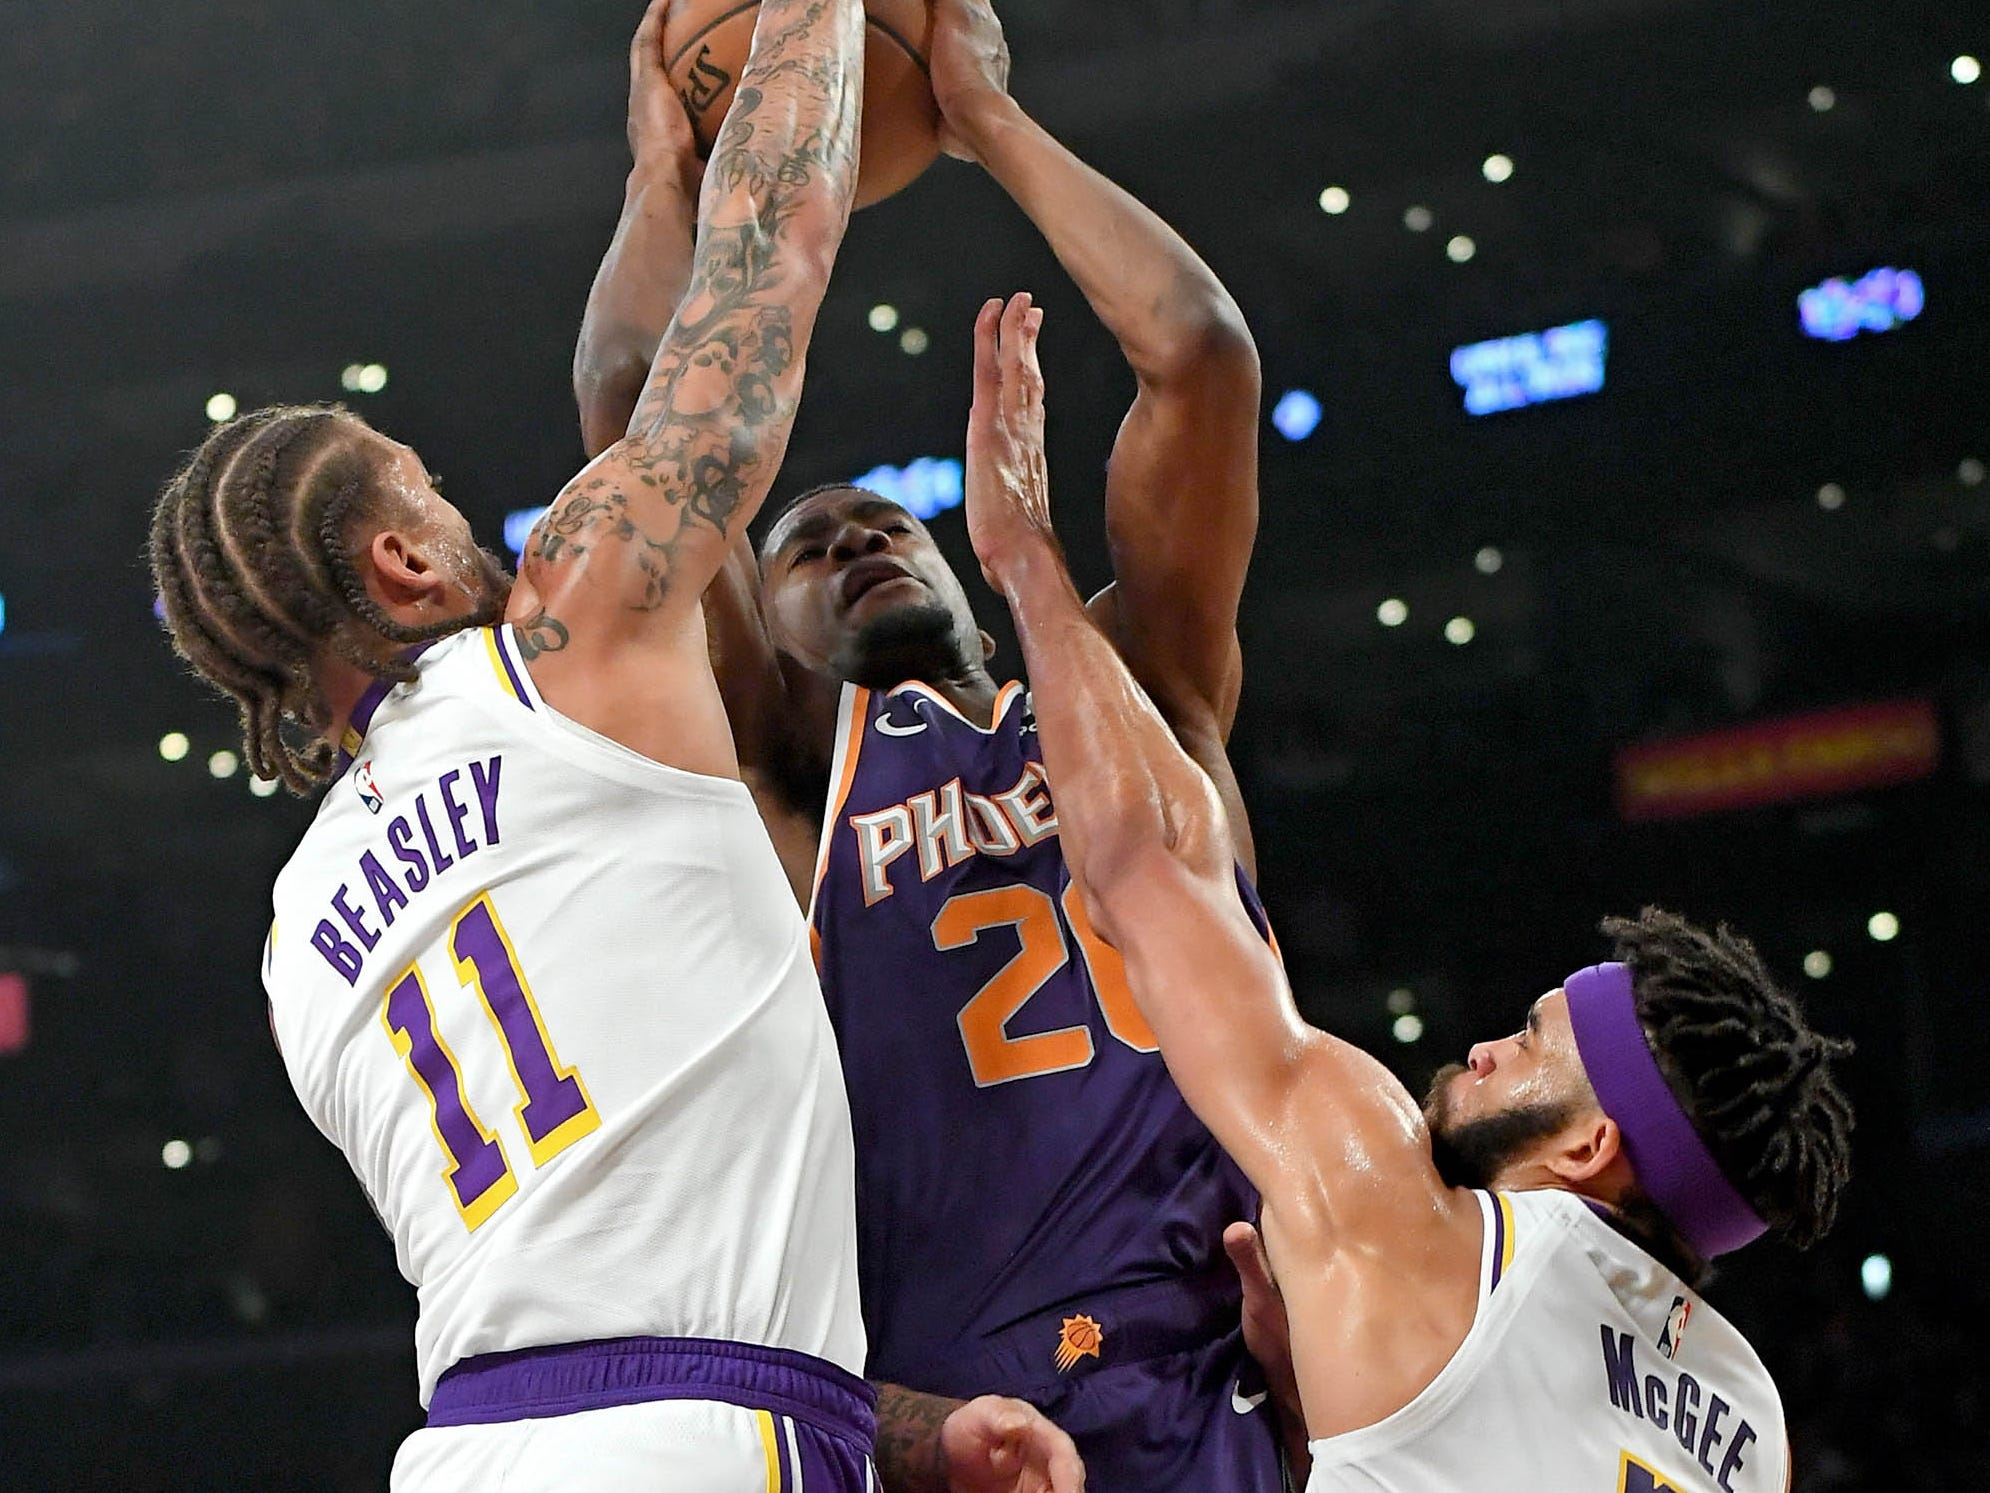 Jan 27, 2019: Los Angeles Lakers center JaVale McGee (7) and forward Michael Beasley (11) reach to block a shot by Phoenix Suns forward Josh Jackson (20) in the first half of the game at Staples Center.